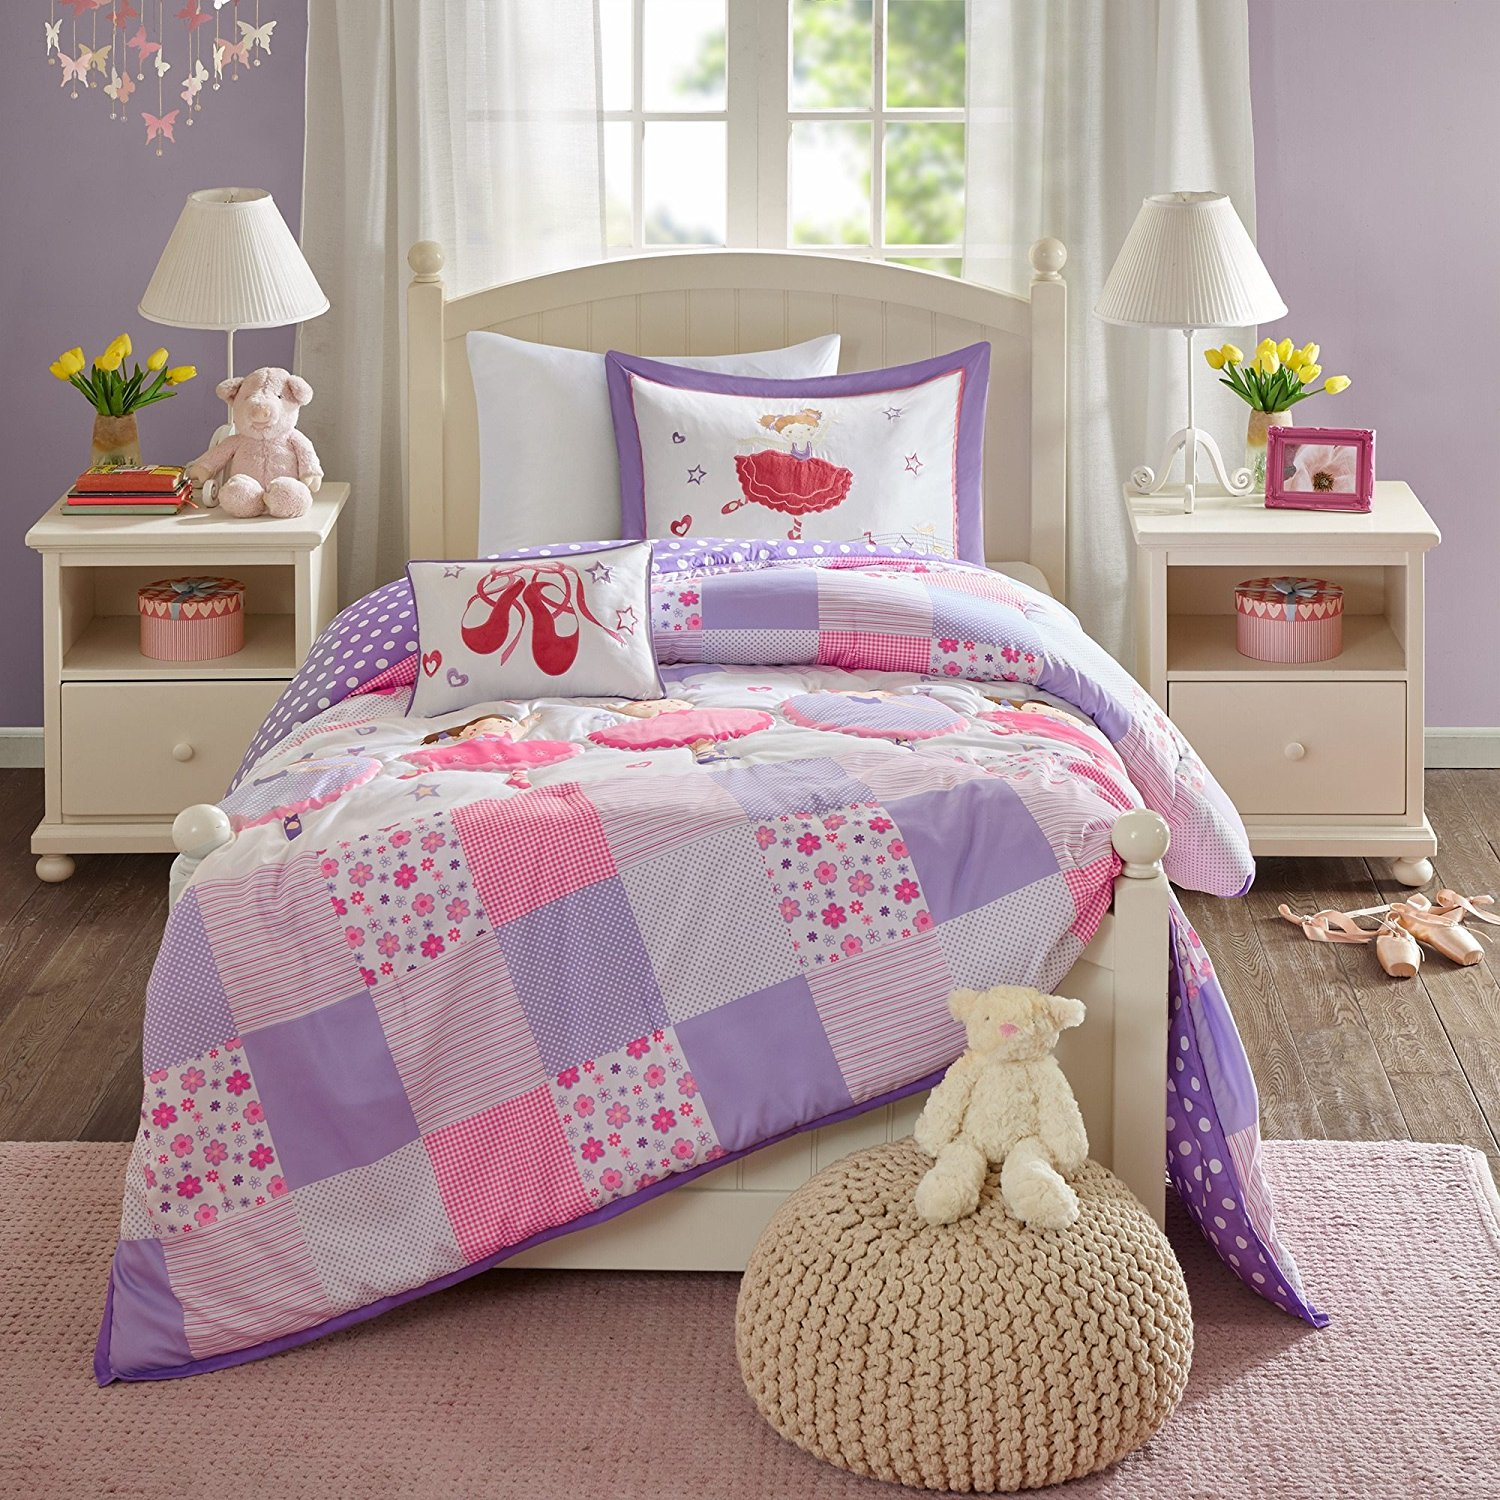 Buy 4 Piece Kids Lavender Pink White Dancers Ballet Shoes Comforter Set Full Queen Colorful Light Pink Purple Patchwork Stripes Floral Checkered Teen Themed Kids Bedding Reversible Polka Dot Polyester In Cheap